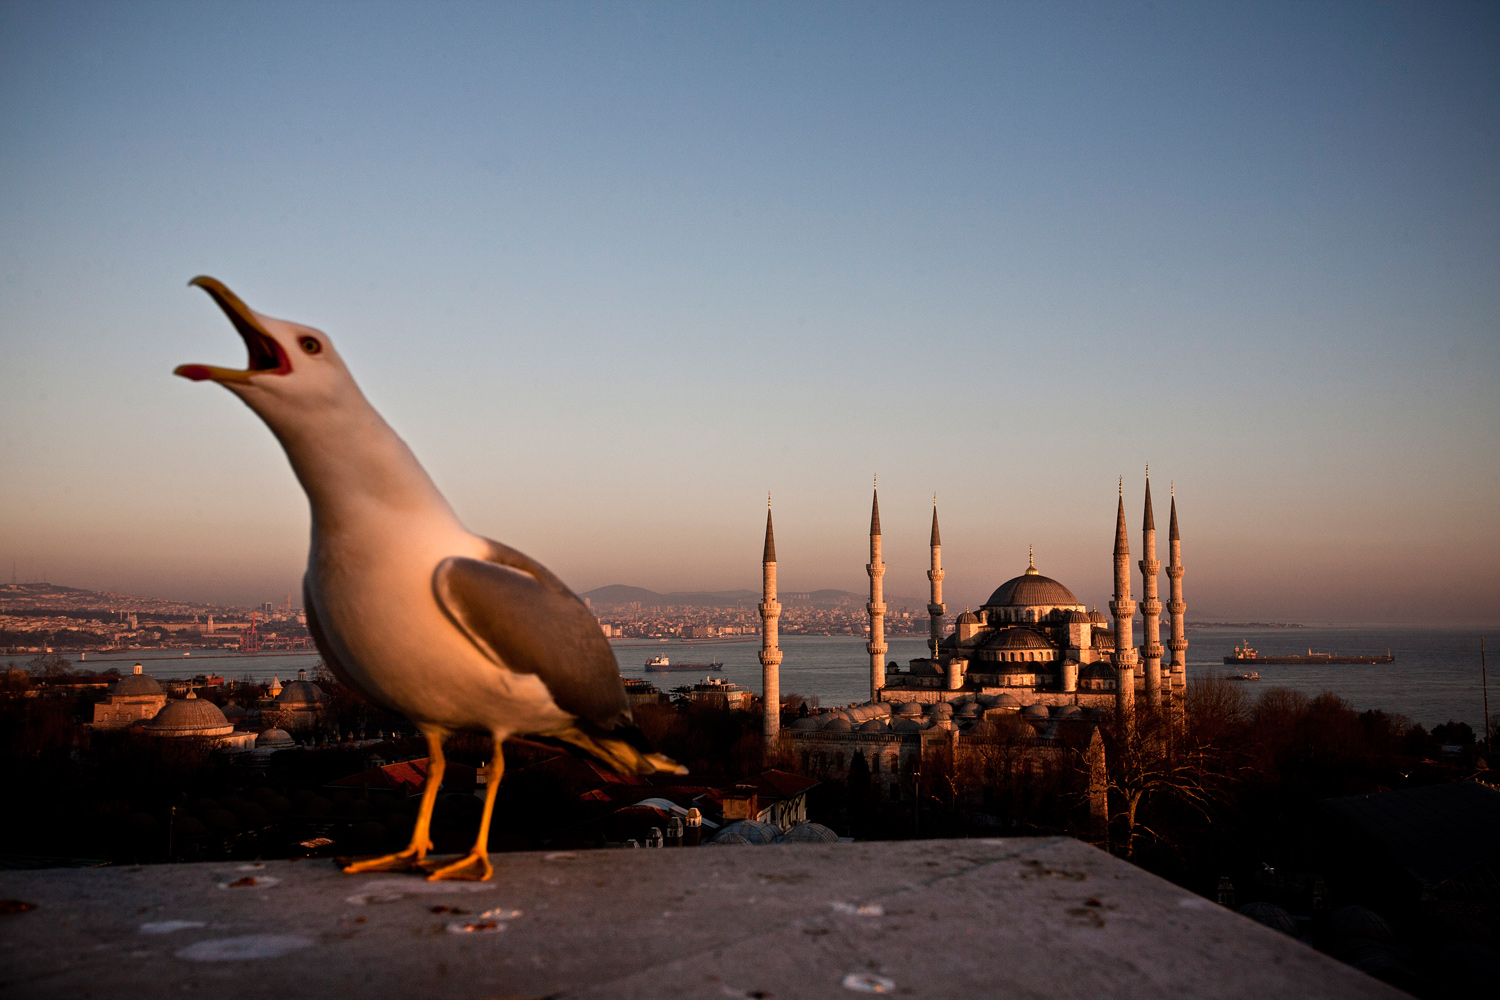 February 6, 2011. An exterior view of Sultanahmet (Blue) Mosque in Istanbul, Turkey.